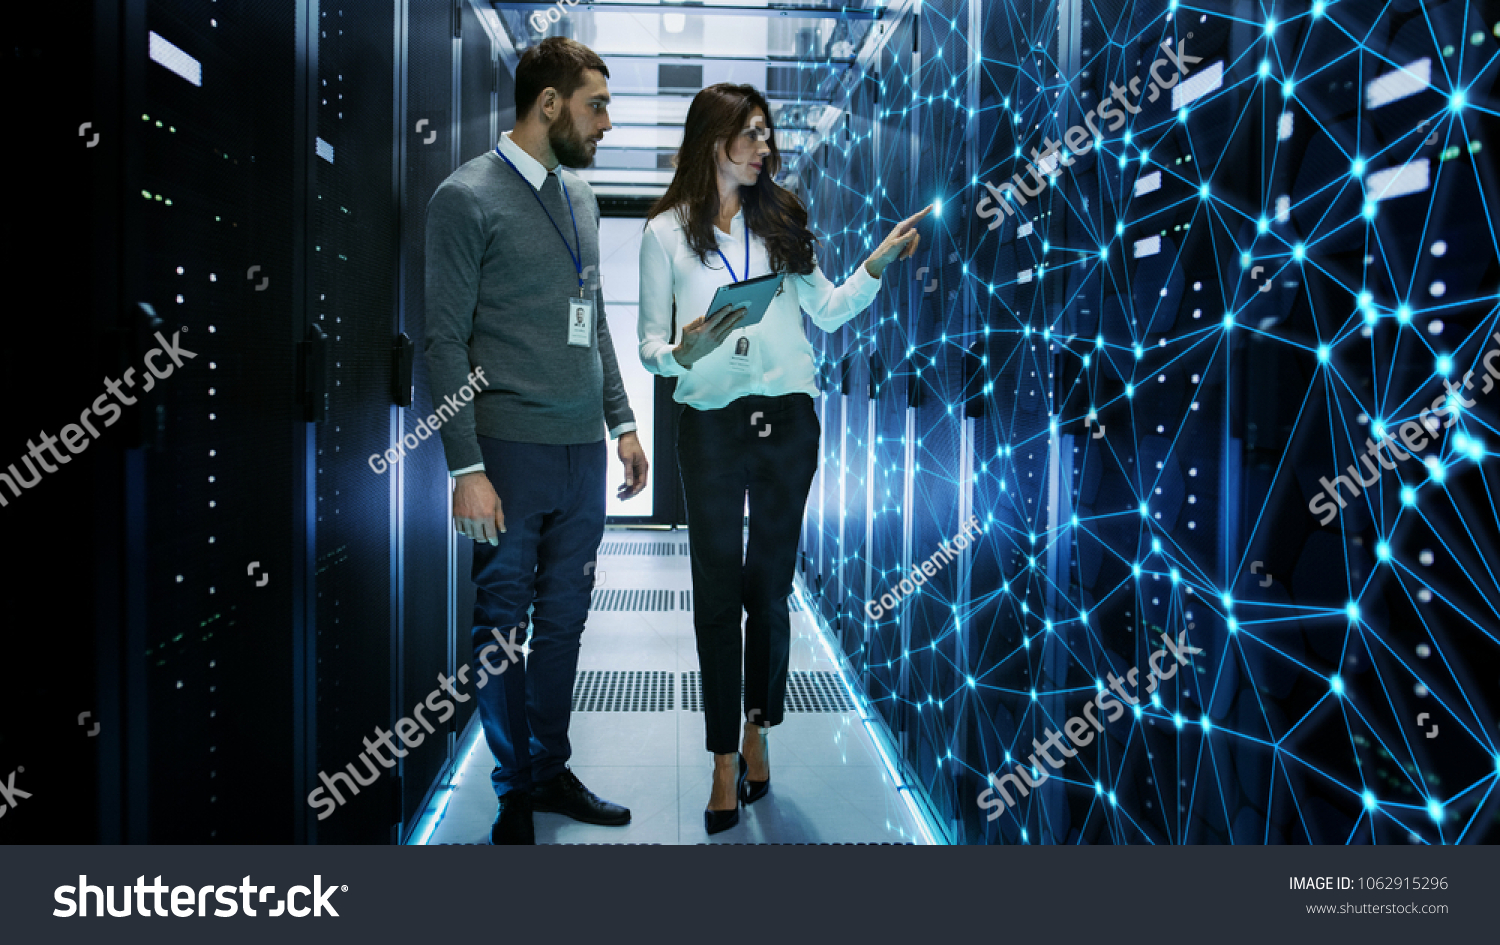 Female and Male IT Engineers Discussing Technical Details in a Working Data Center/ Server Room with Internet Connection Visualisation. #1062915296